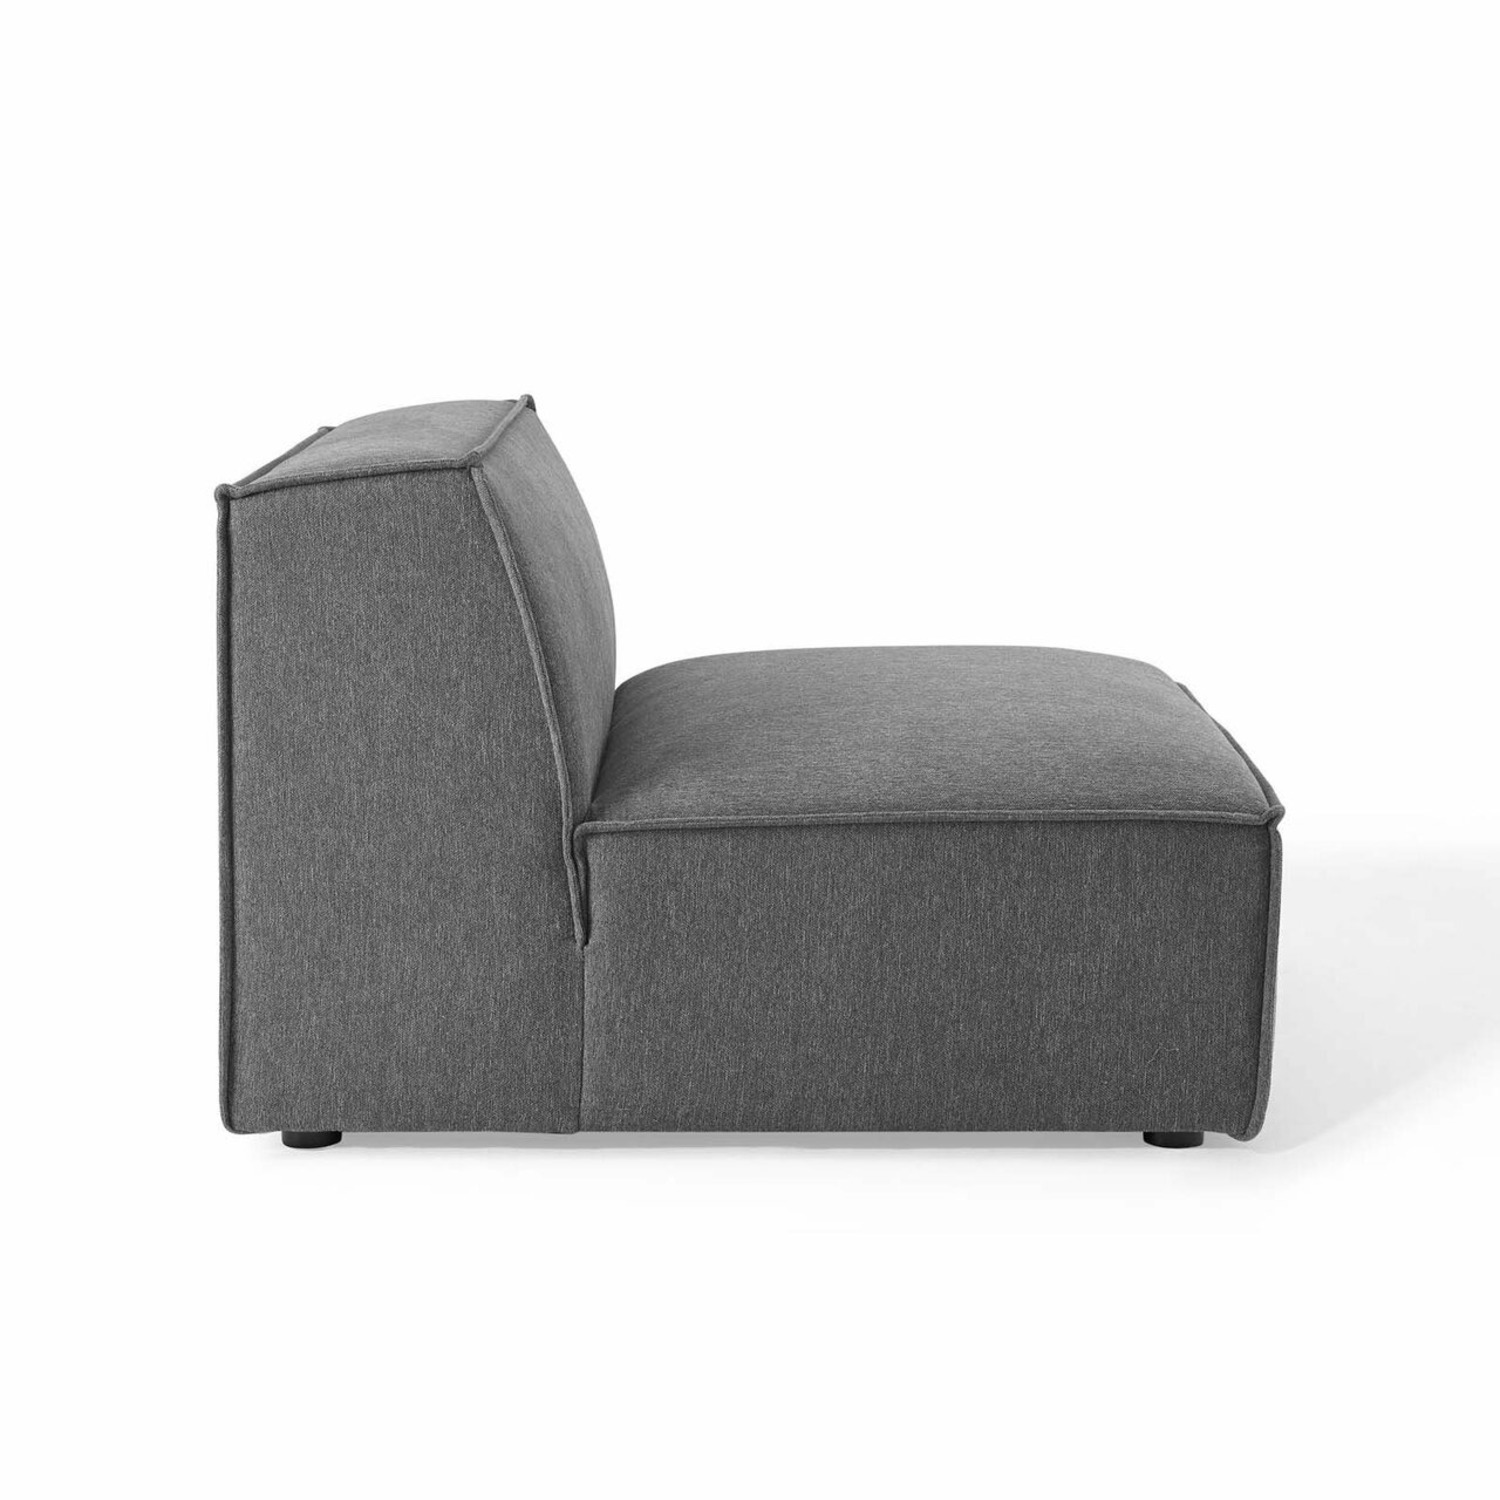 6-Piece Sectional Sofa In Charcoal Upholstery - image-7